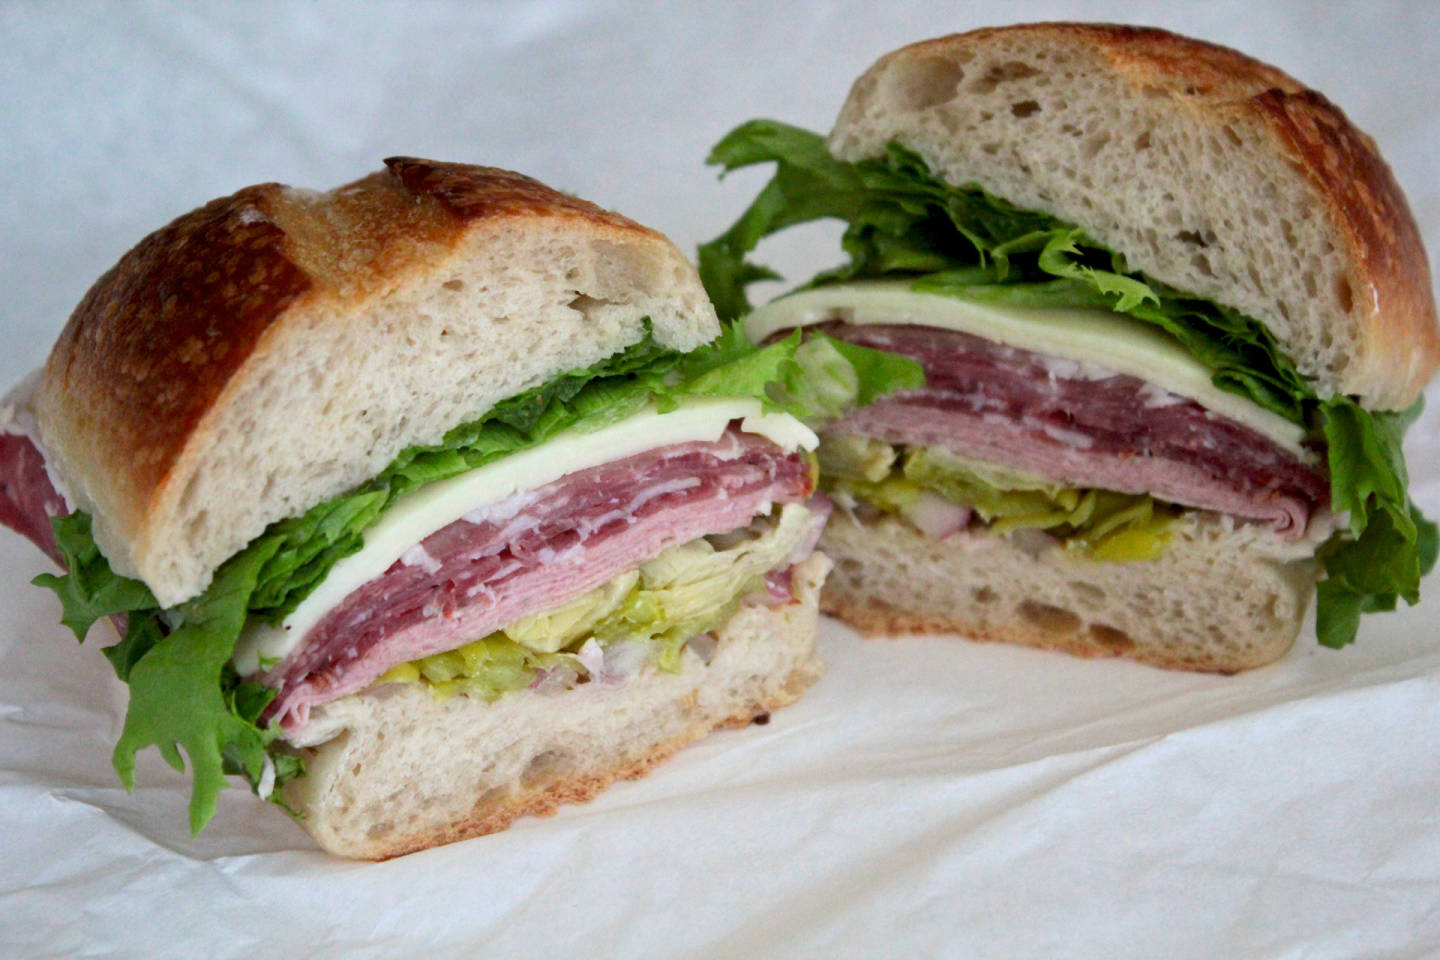 The Godfather sandwich features salami, coppa, prosciutto, mortadella, artichoke hearts and pepperoncinis.  Jeff Cianci